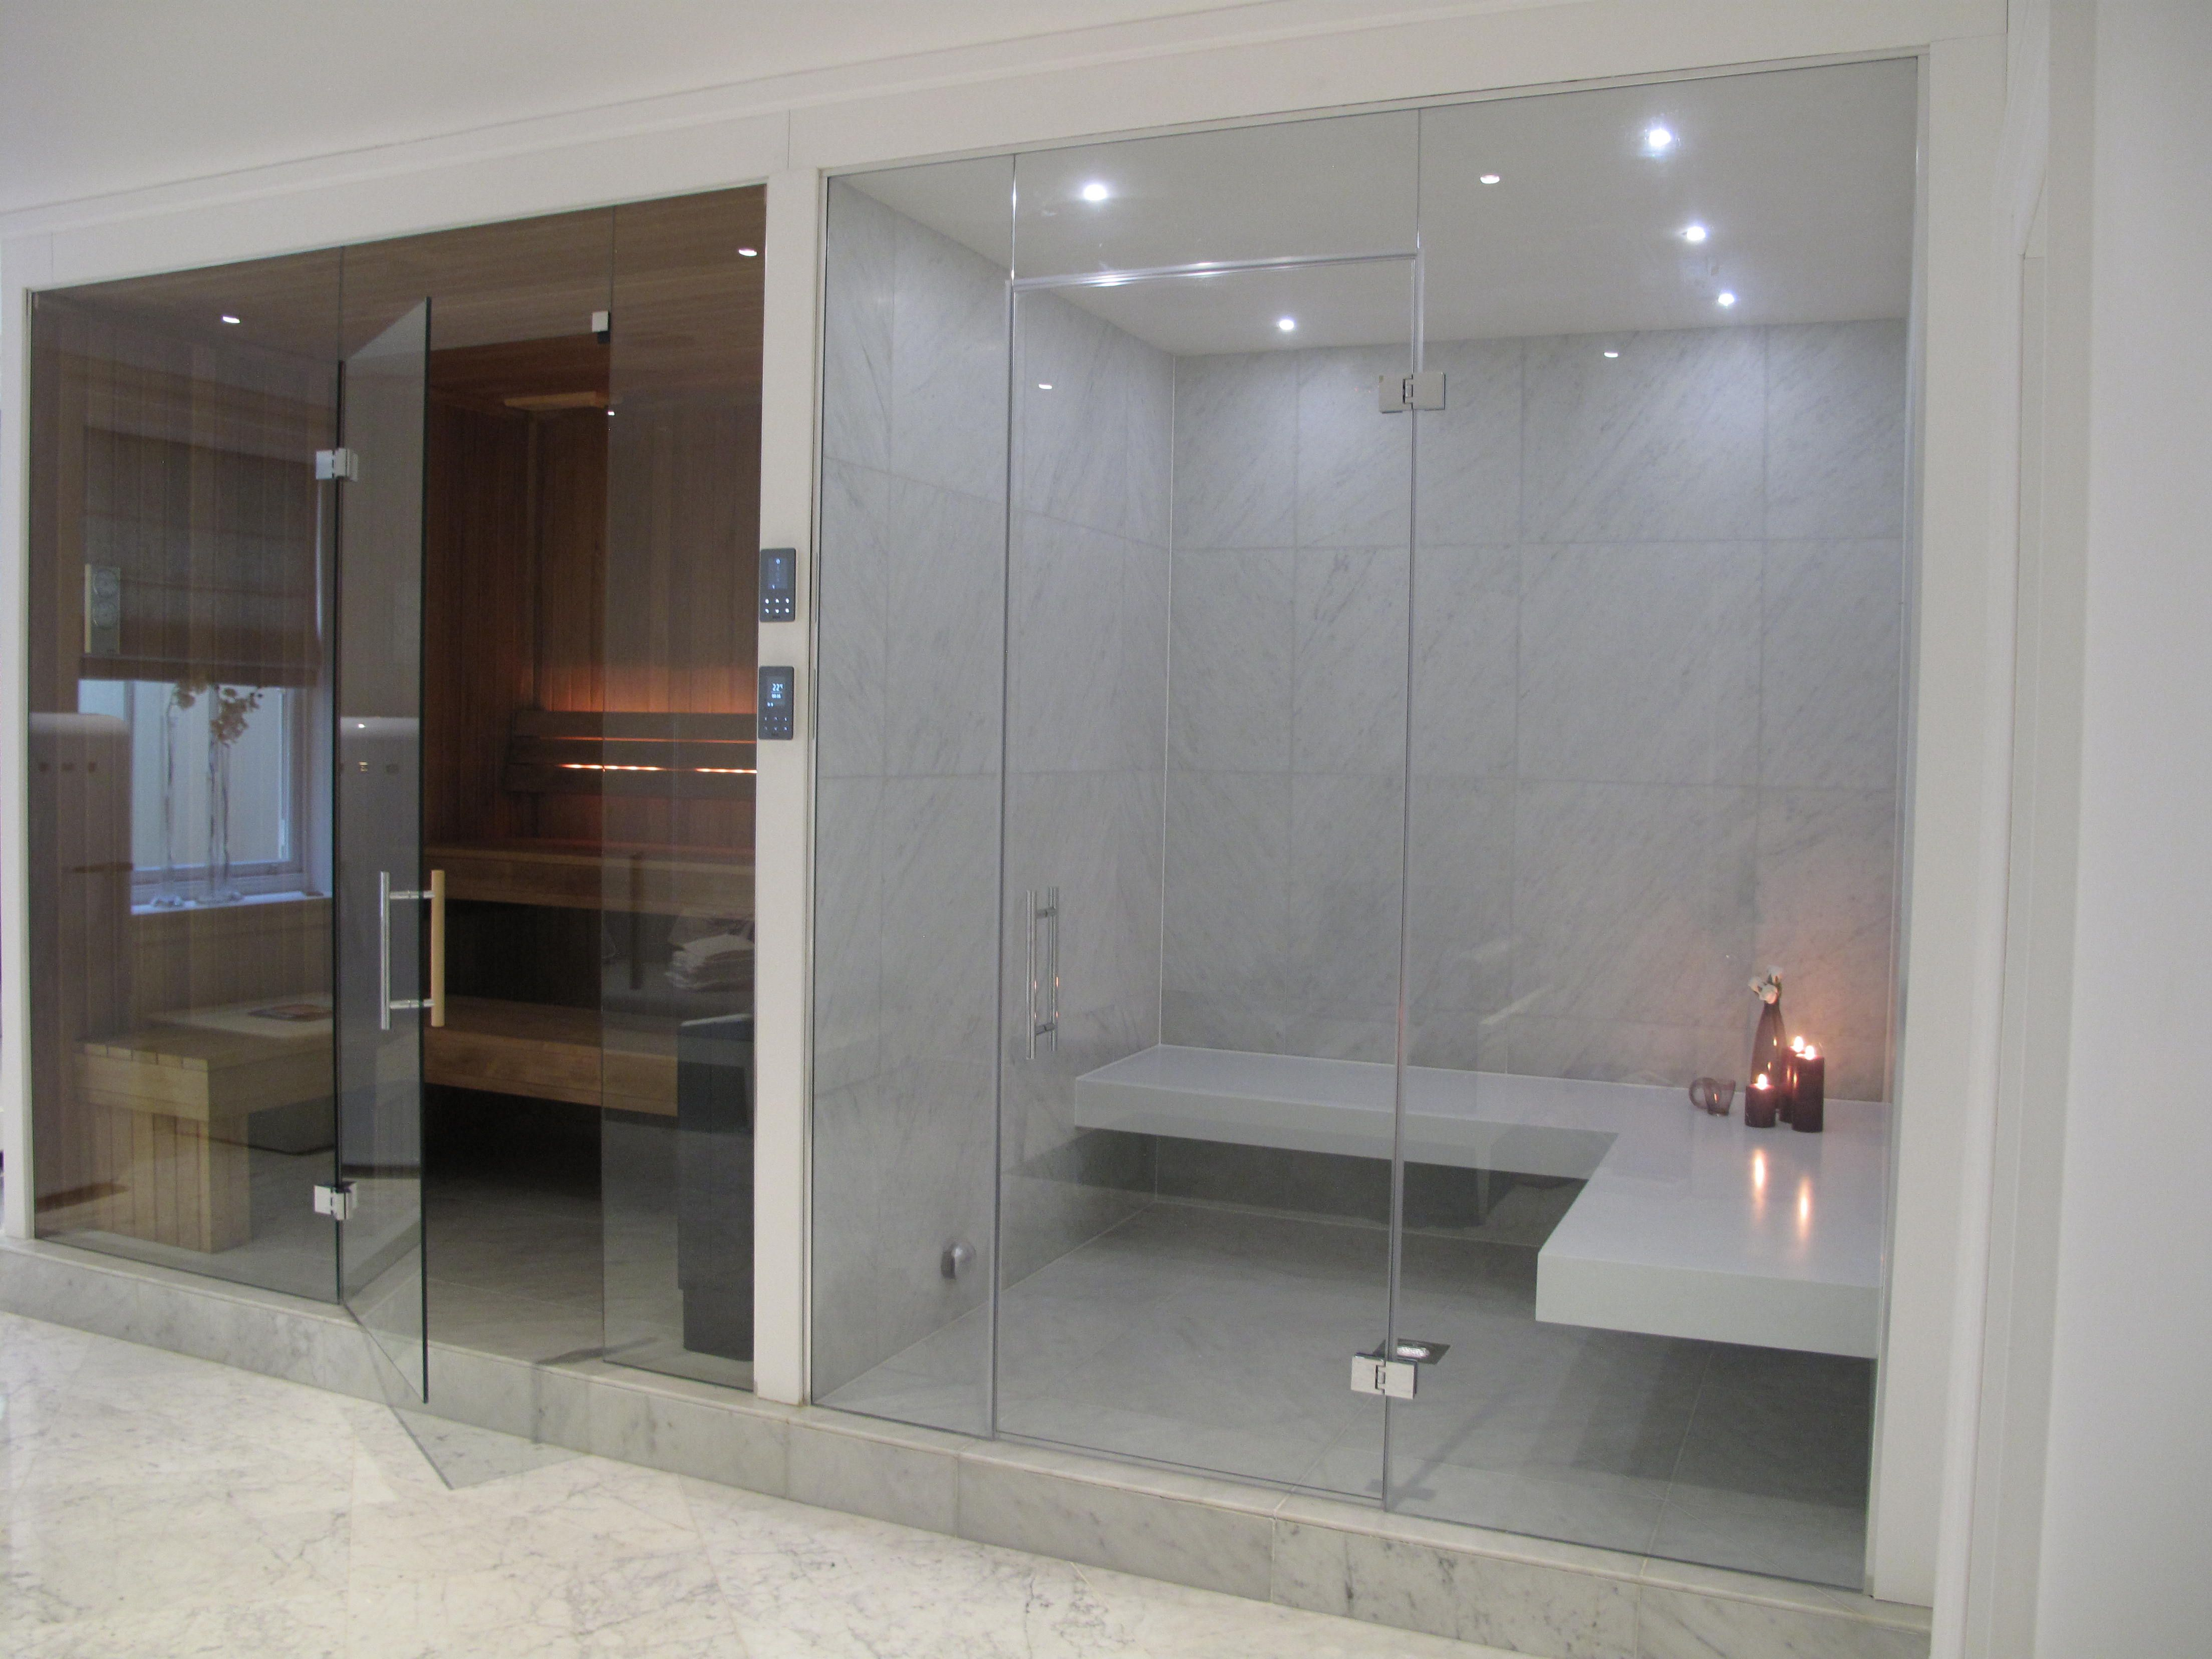 This Stylish Steam Room Has White Corian Benches And Large